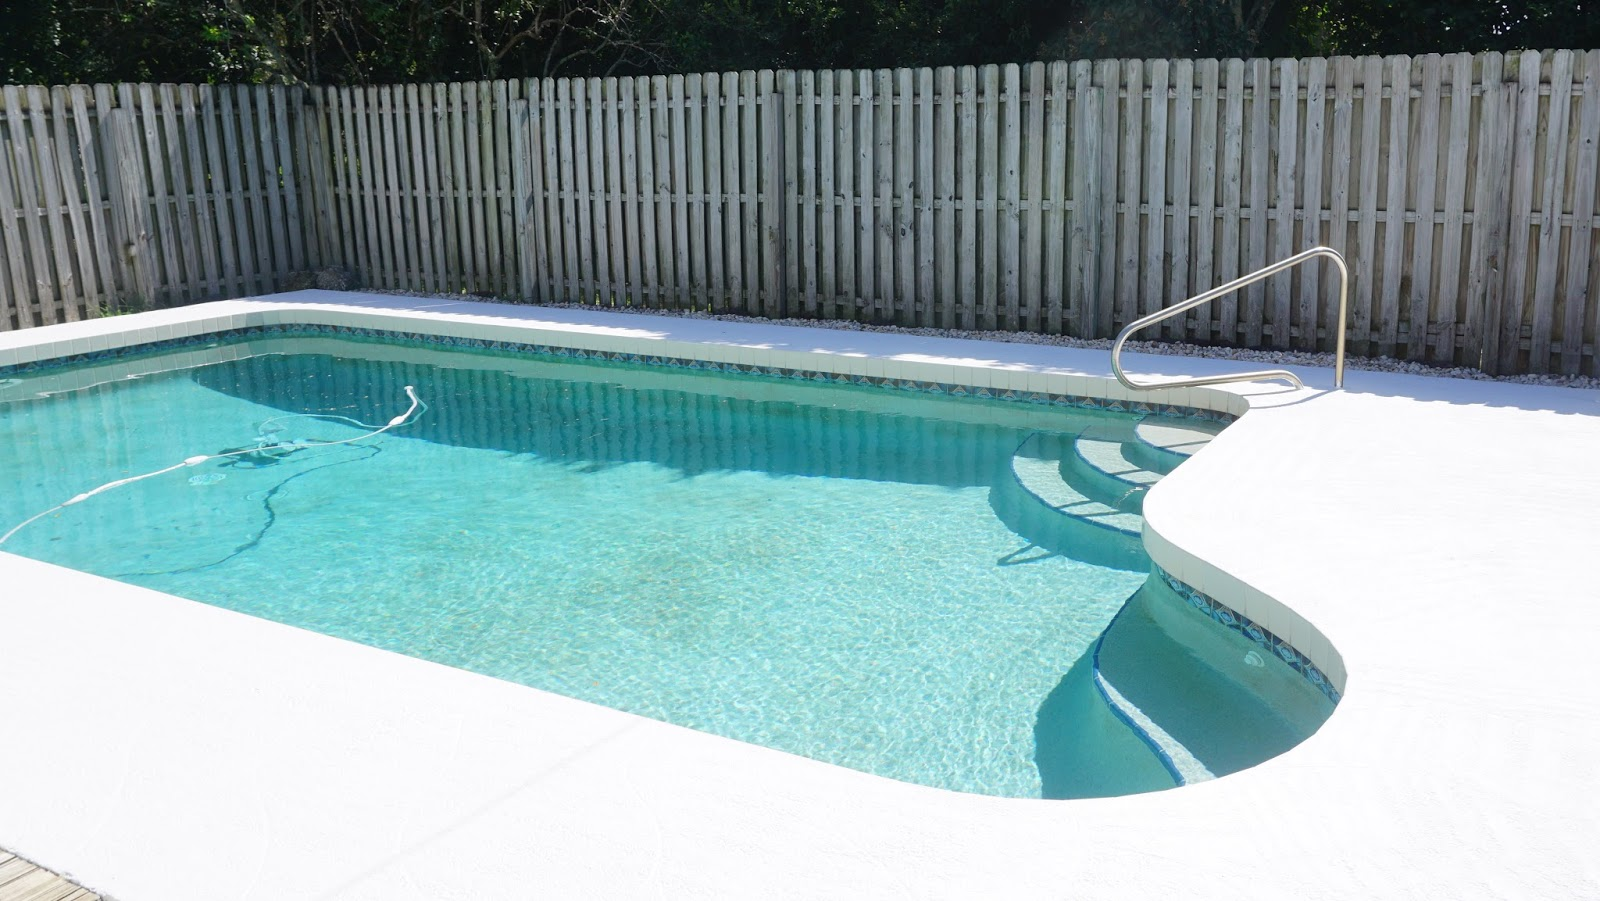 Lorraine Stanick How To Improve Pool Deck Behr